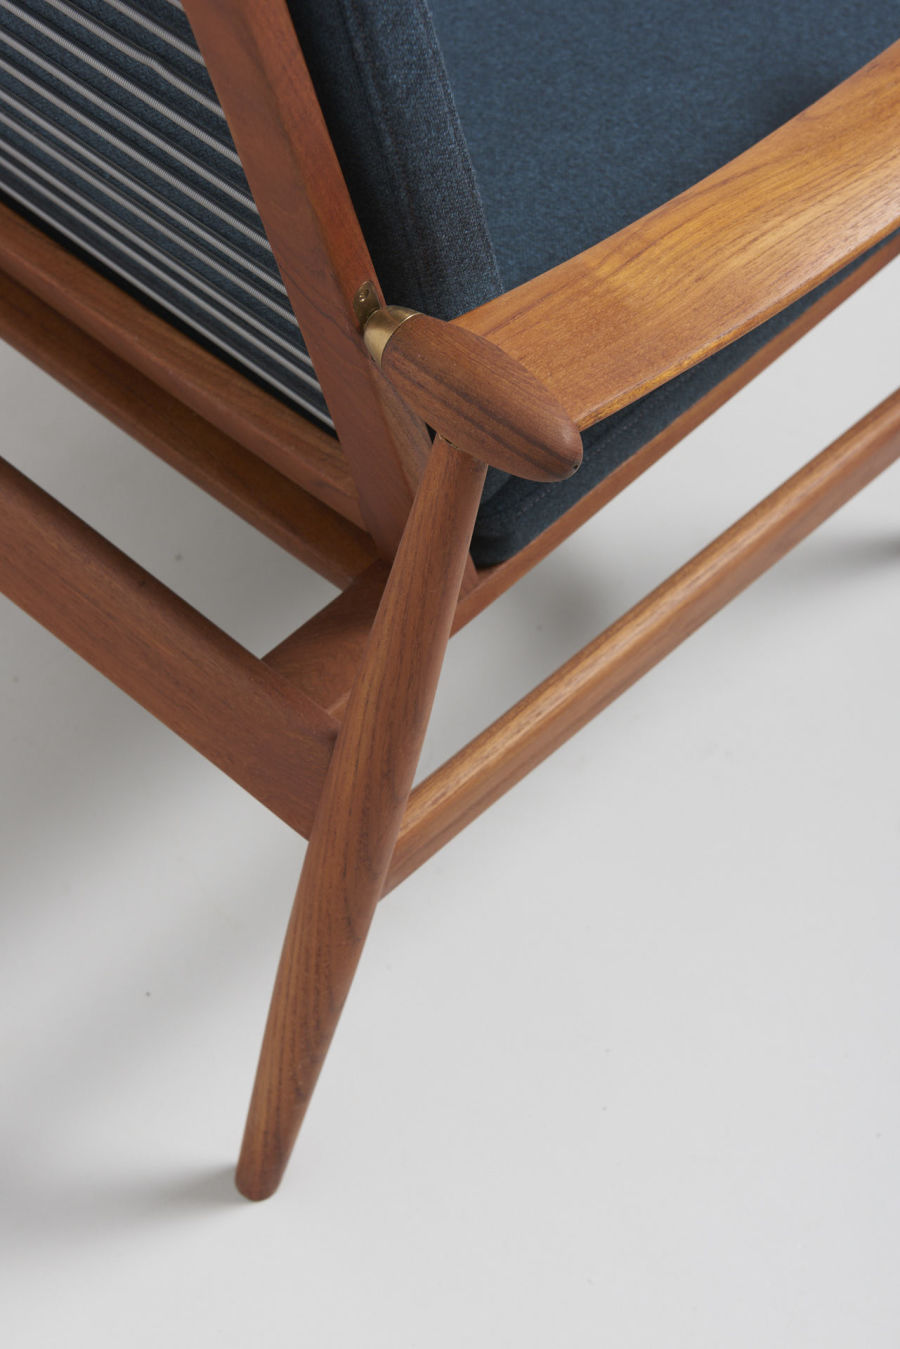 modestfurniture-vintage-1688-fin-juhl-spade-chair-france-and-son06